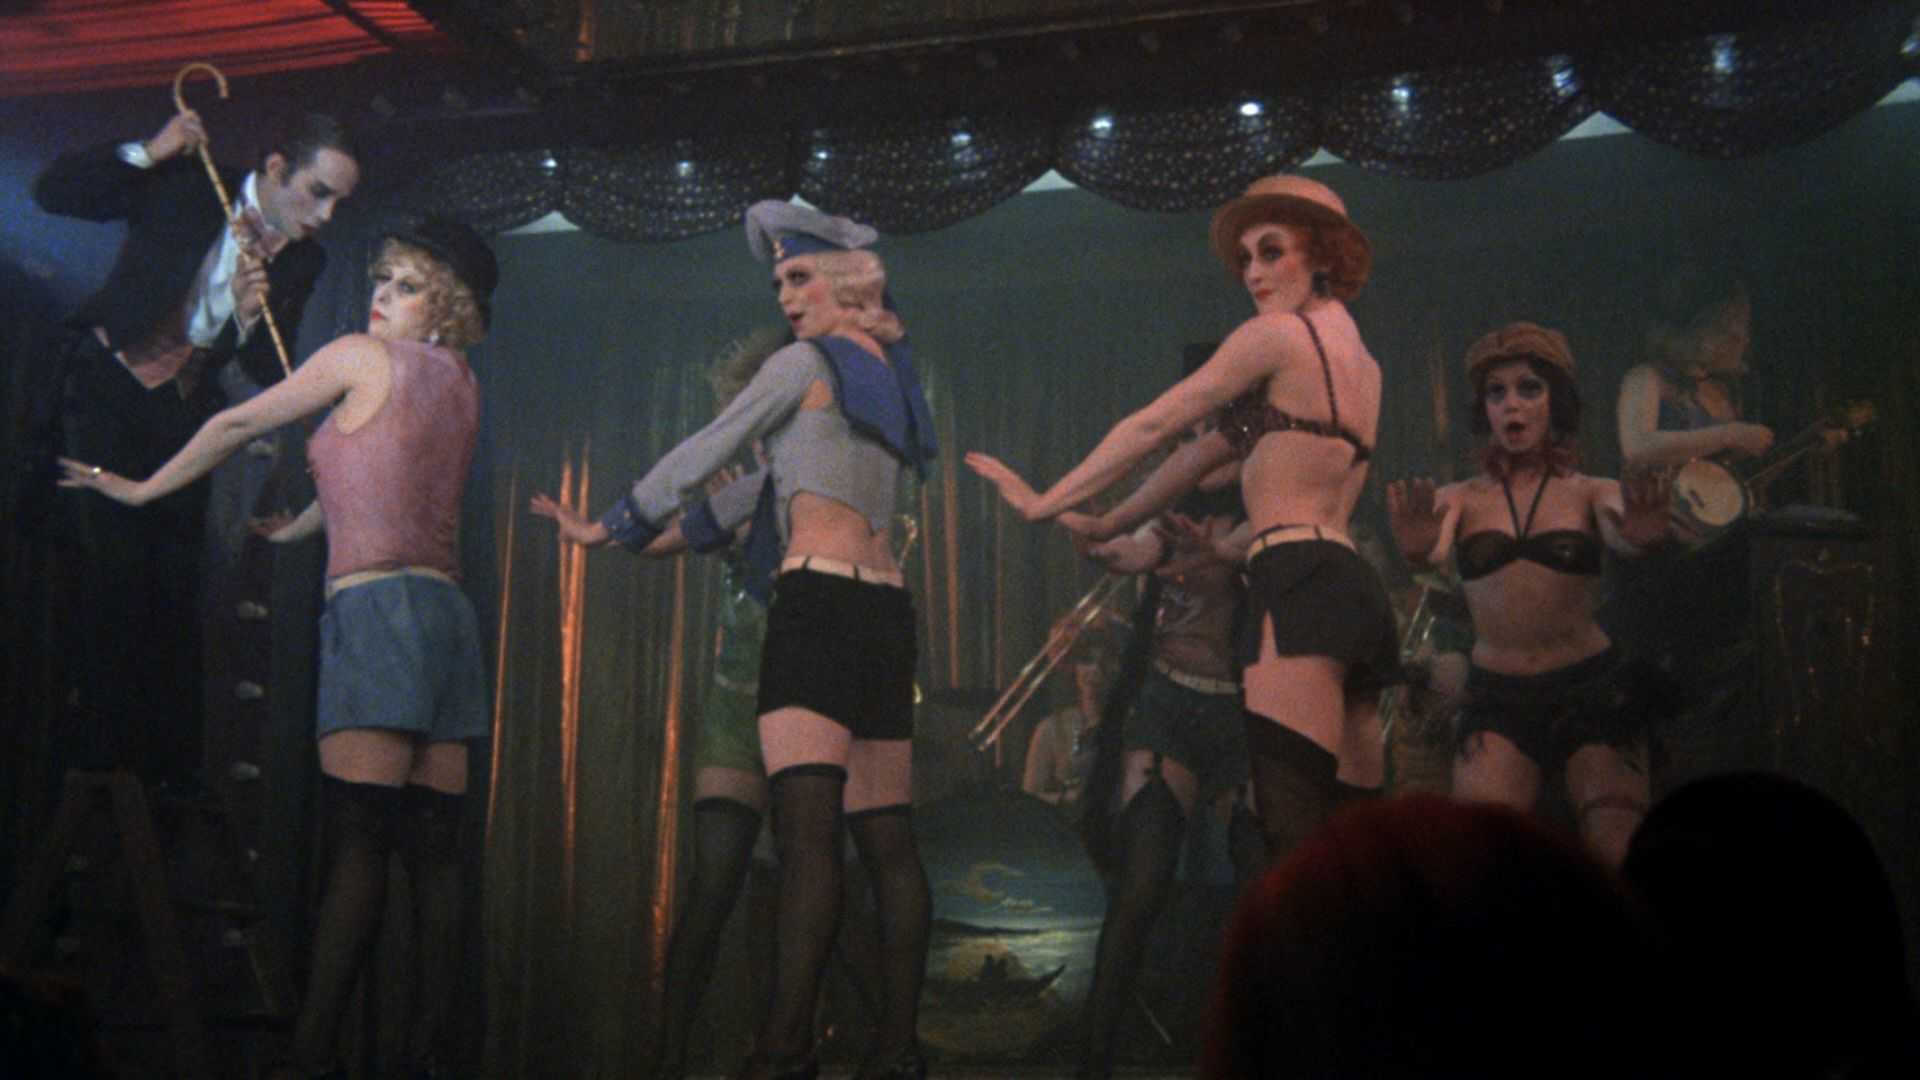 A review of the 1972 film cabaret